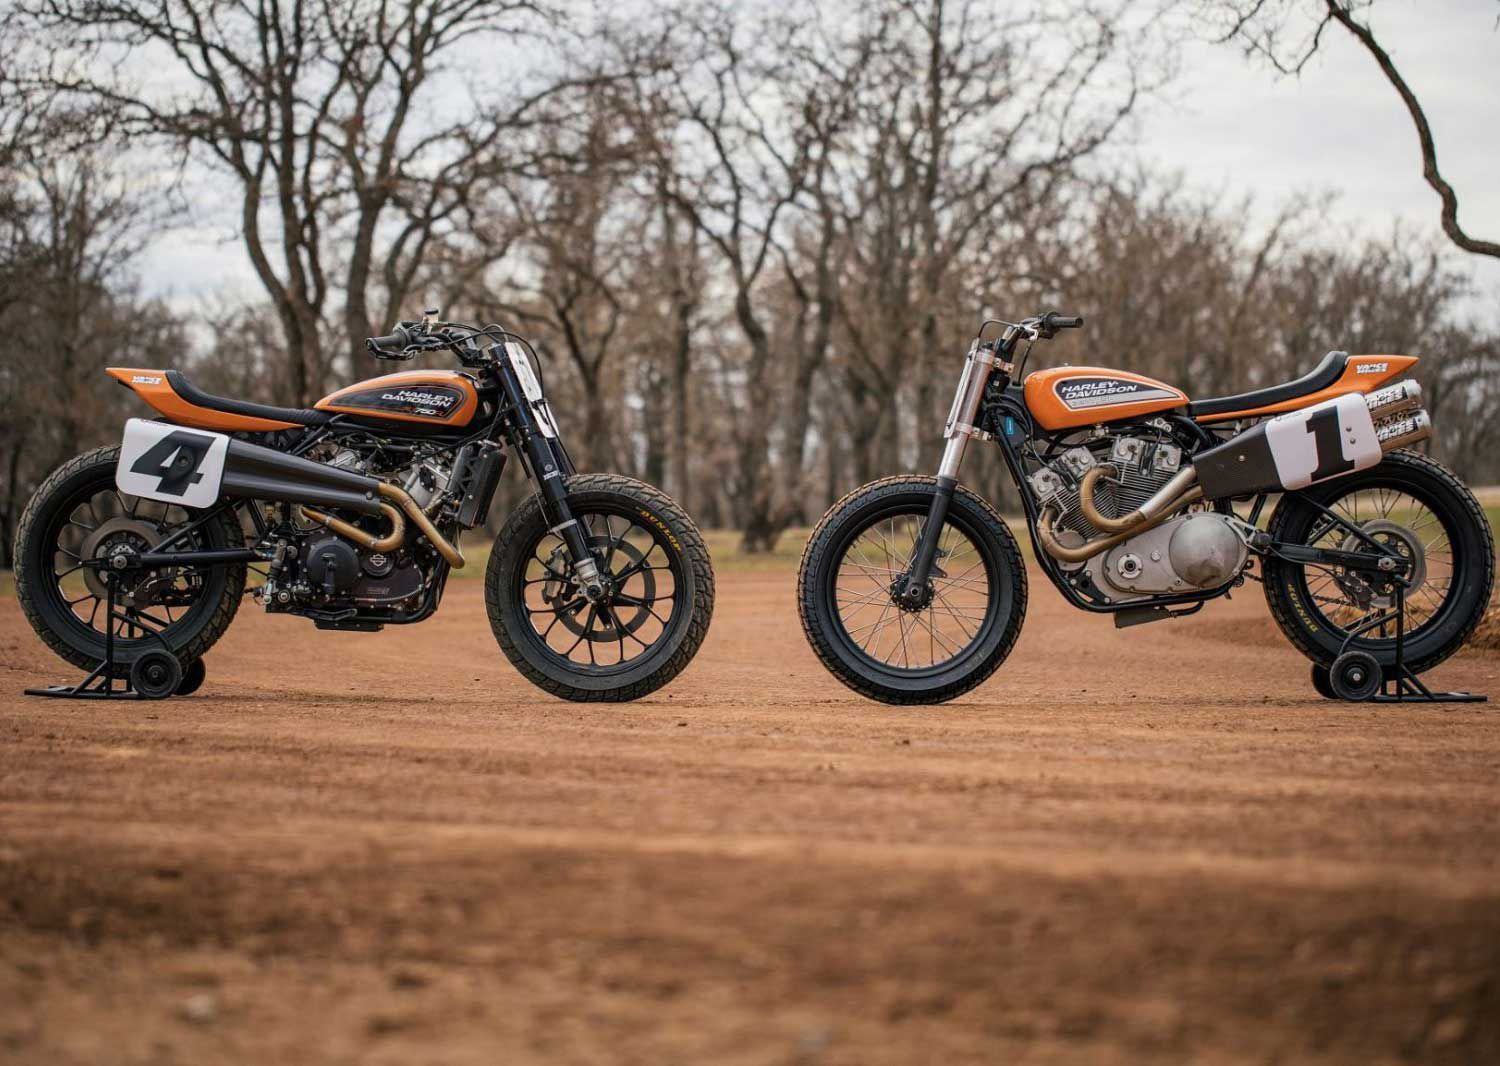 The Harley factory team now campaigns the liquid-cooled XG750R racer (at left) in the AFT series; it'll be wearing the historic Jet Fire Orange livery for the 2020 season.